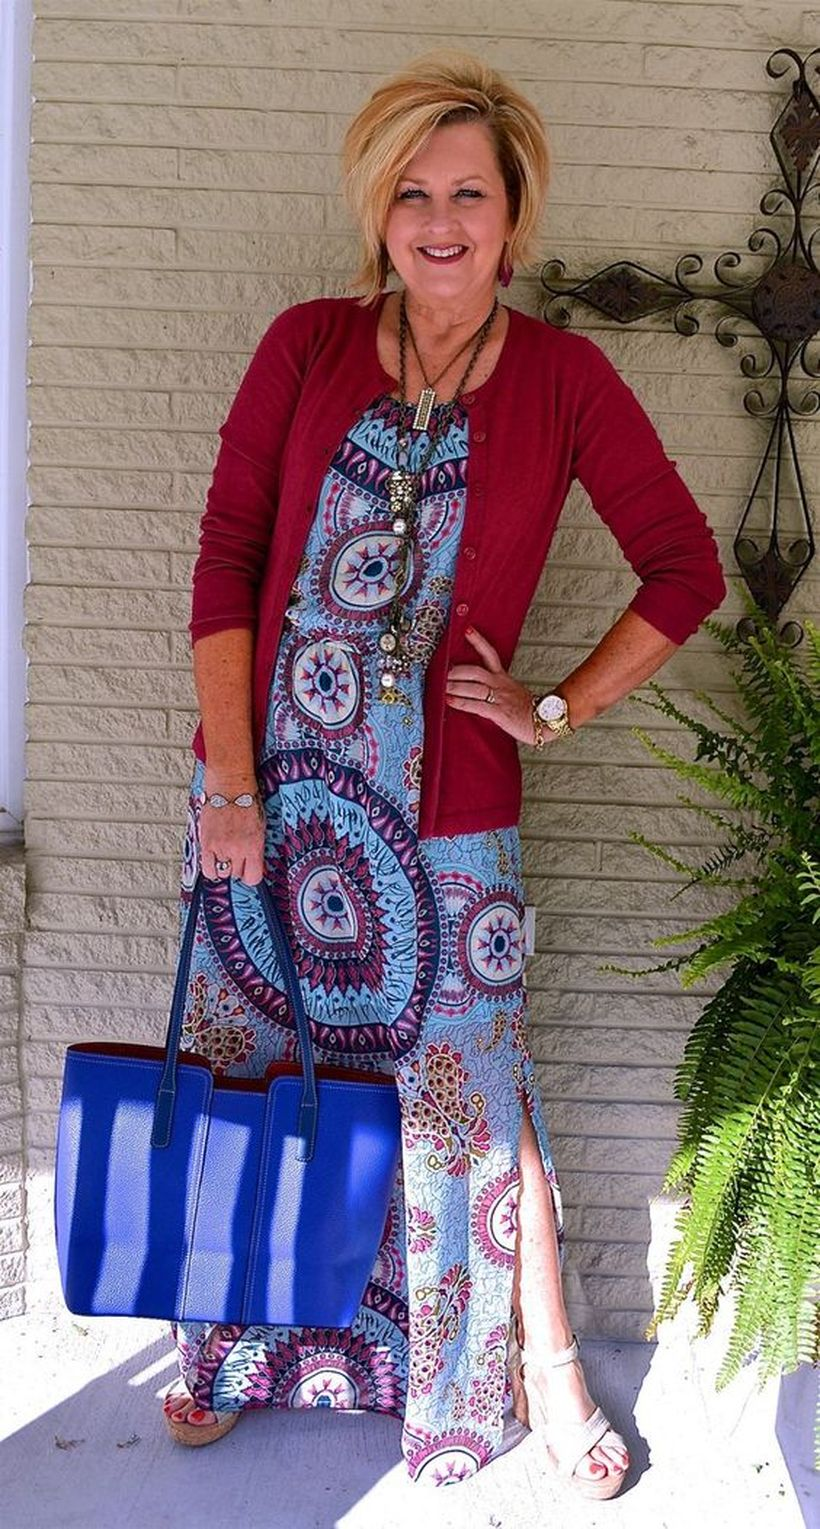 Fashionable over 50 fall outfits ideas 24 - Fashion Best